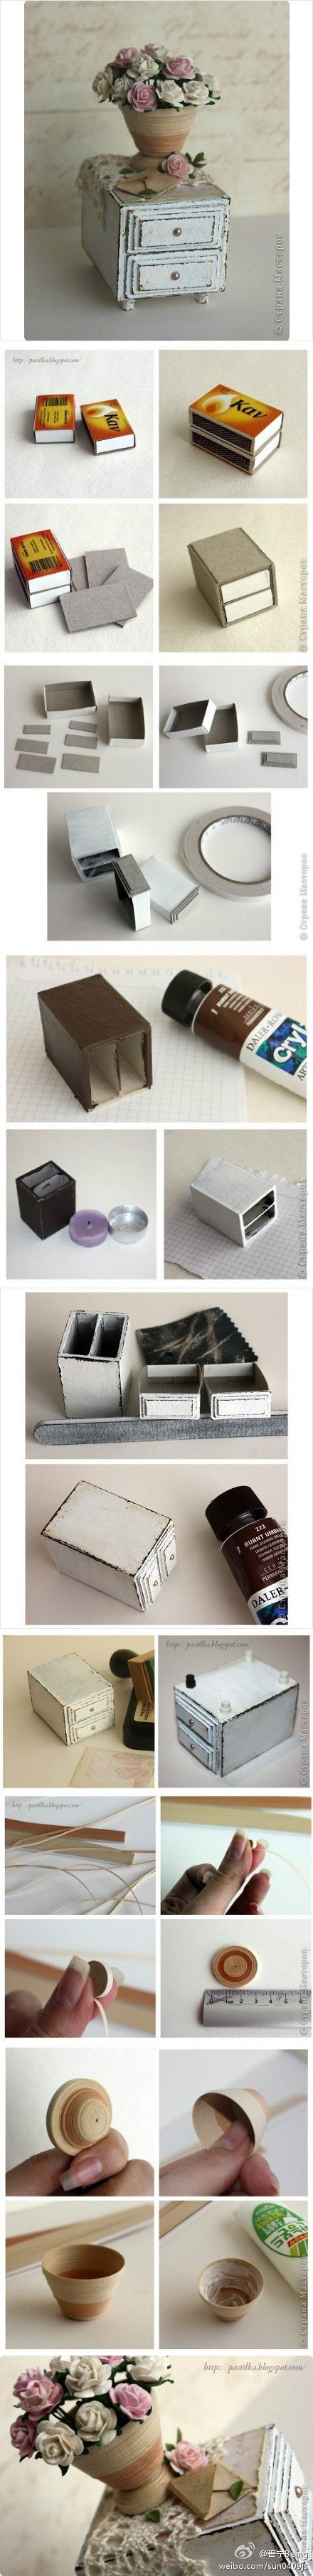 miniature drawers tutorial